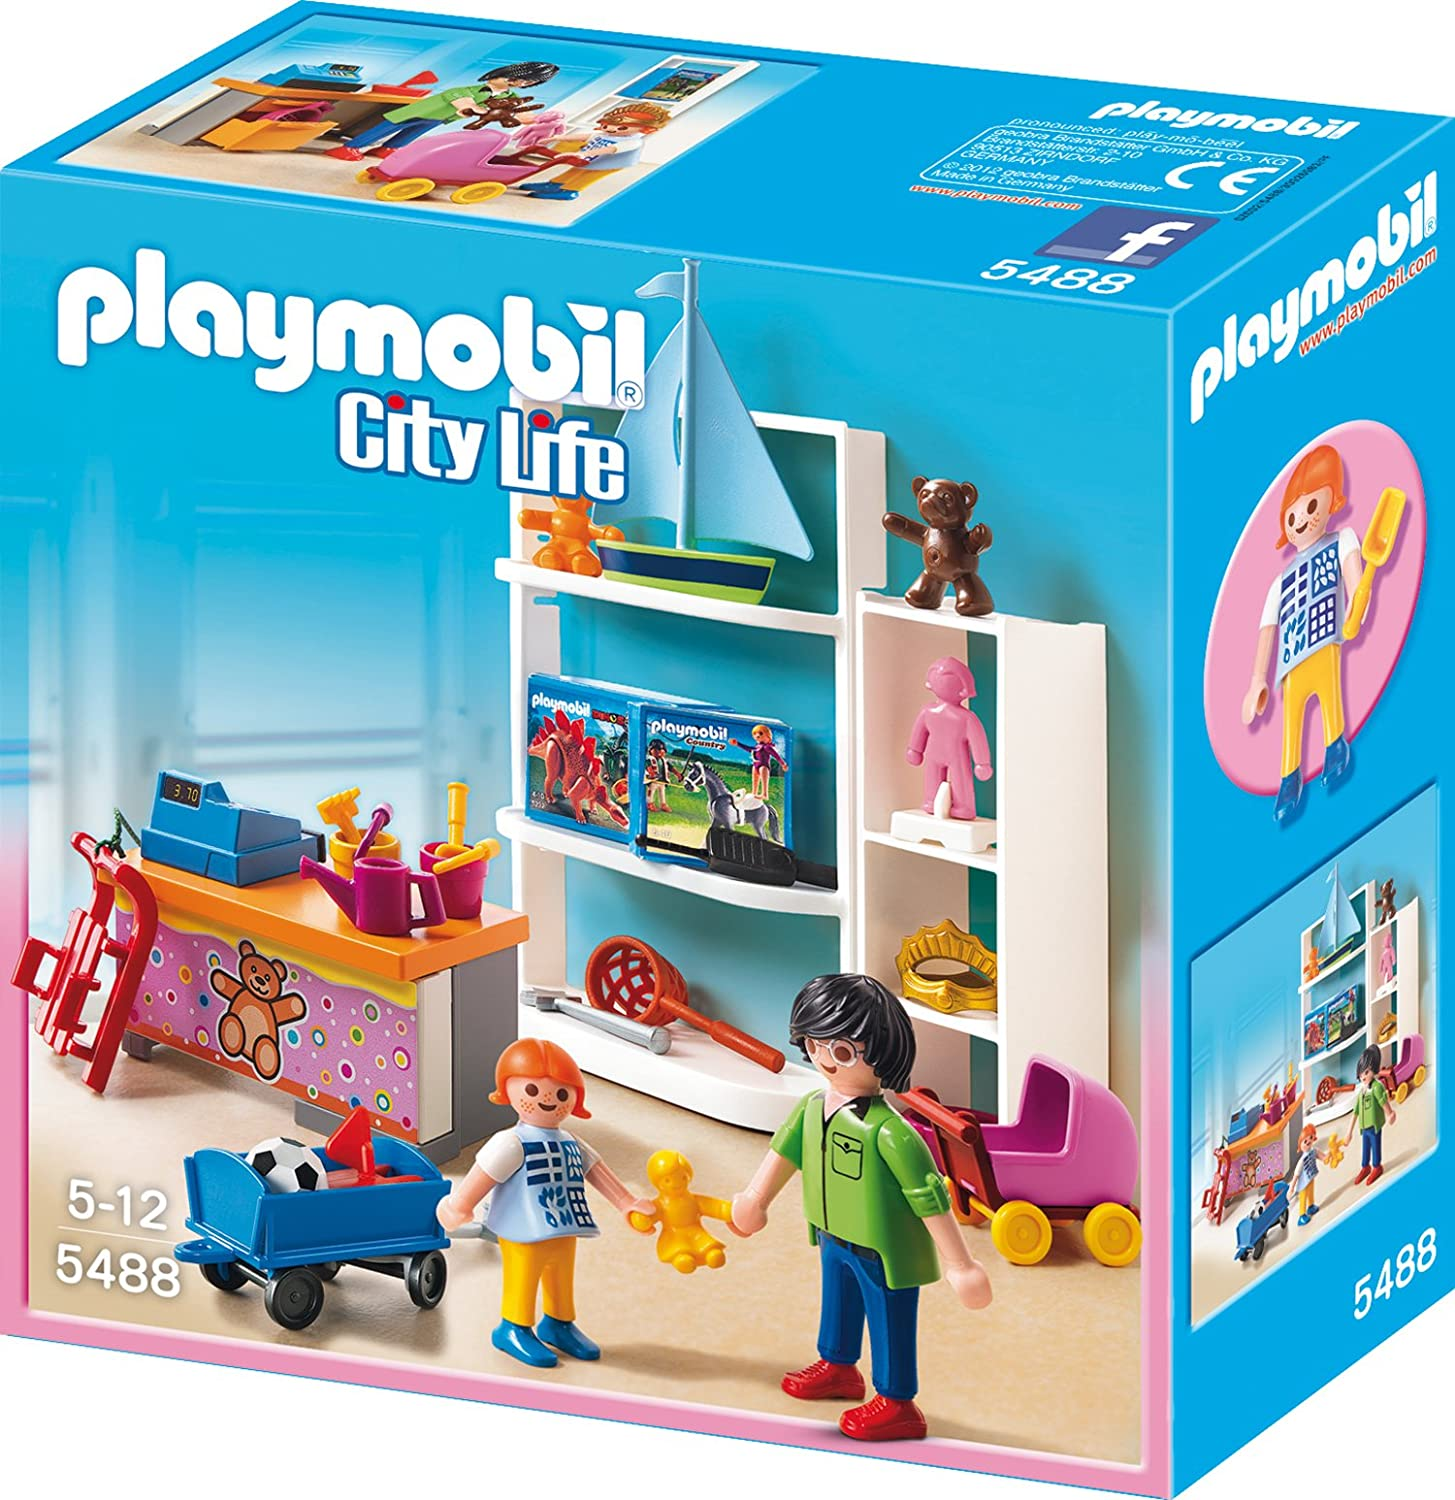 frisch spielzeug online shop playmobil spielwaren. Black Bedroom Furniture Sets. Home Design Ideas